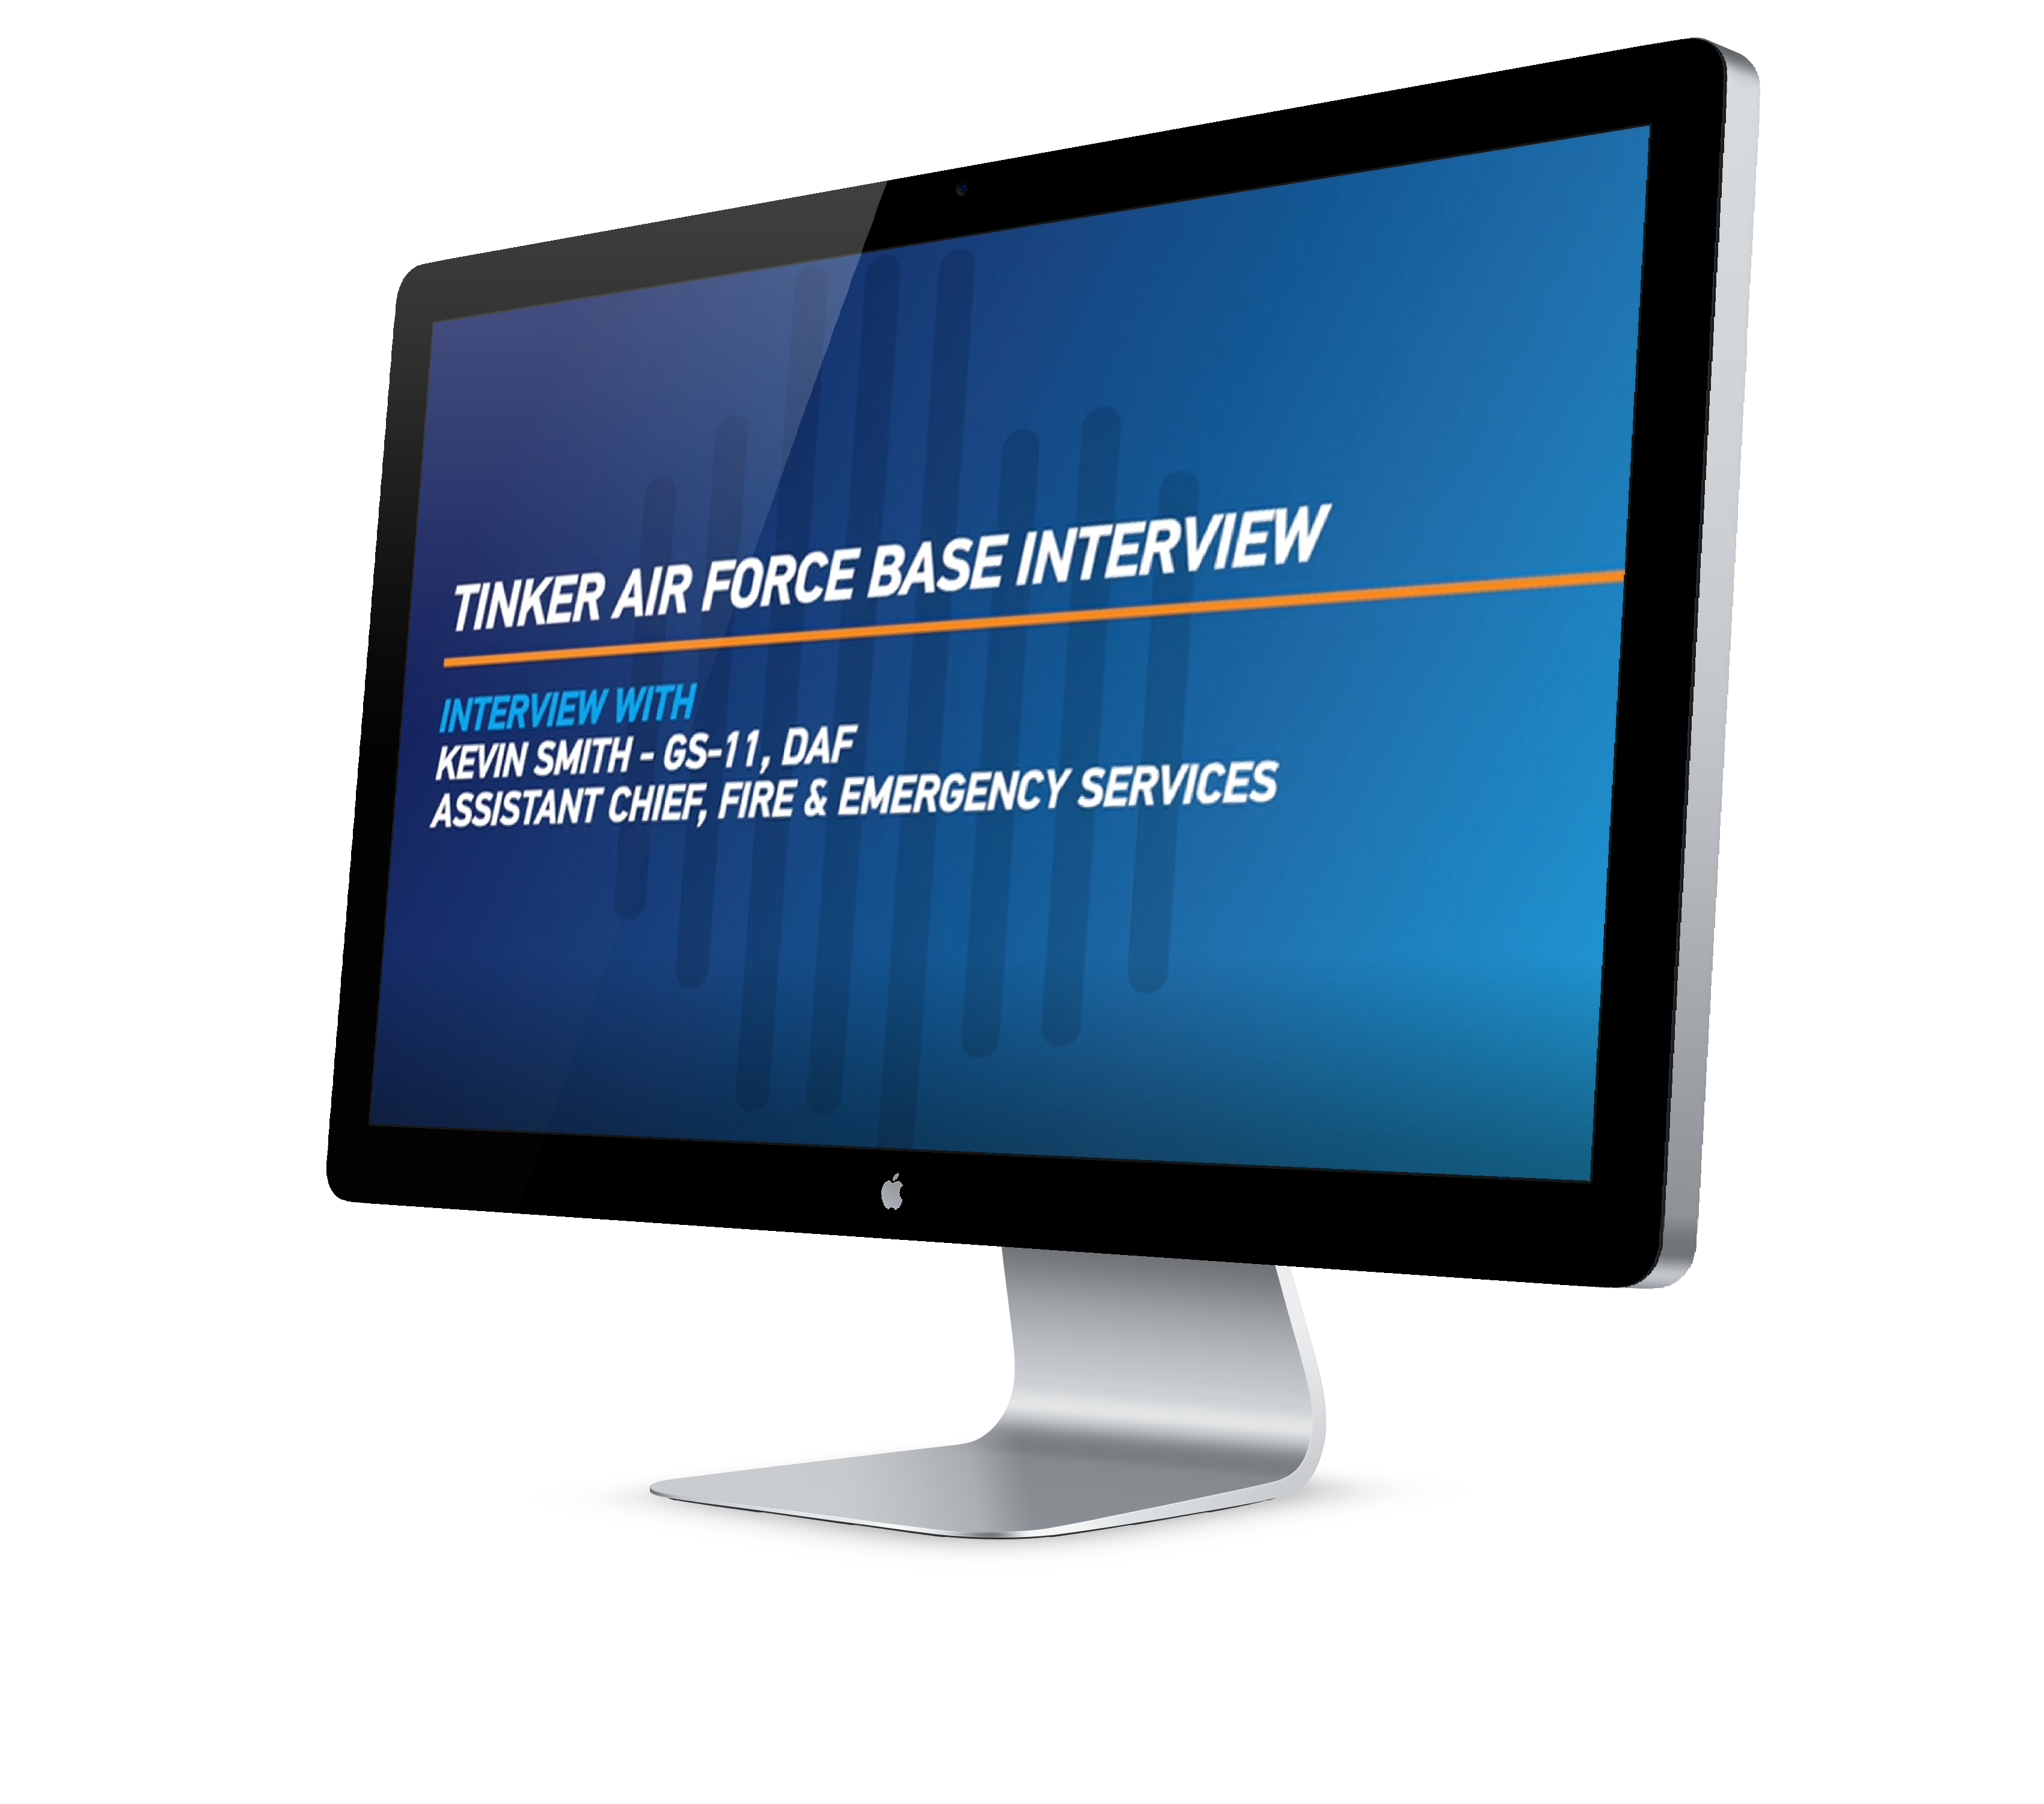 tinker air force base interview